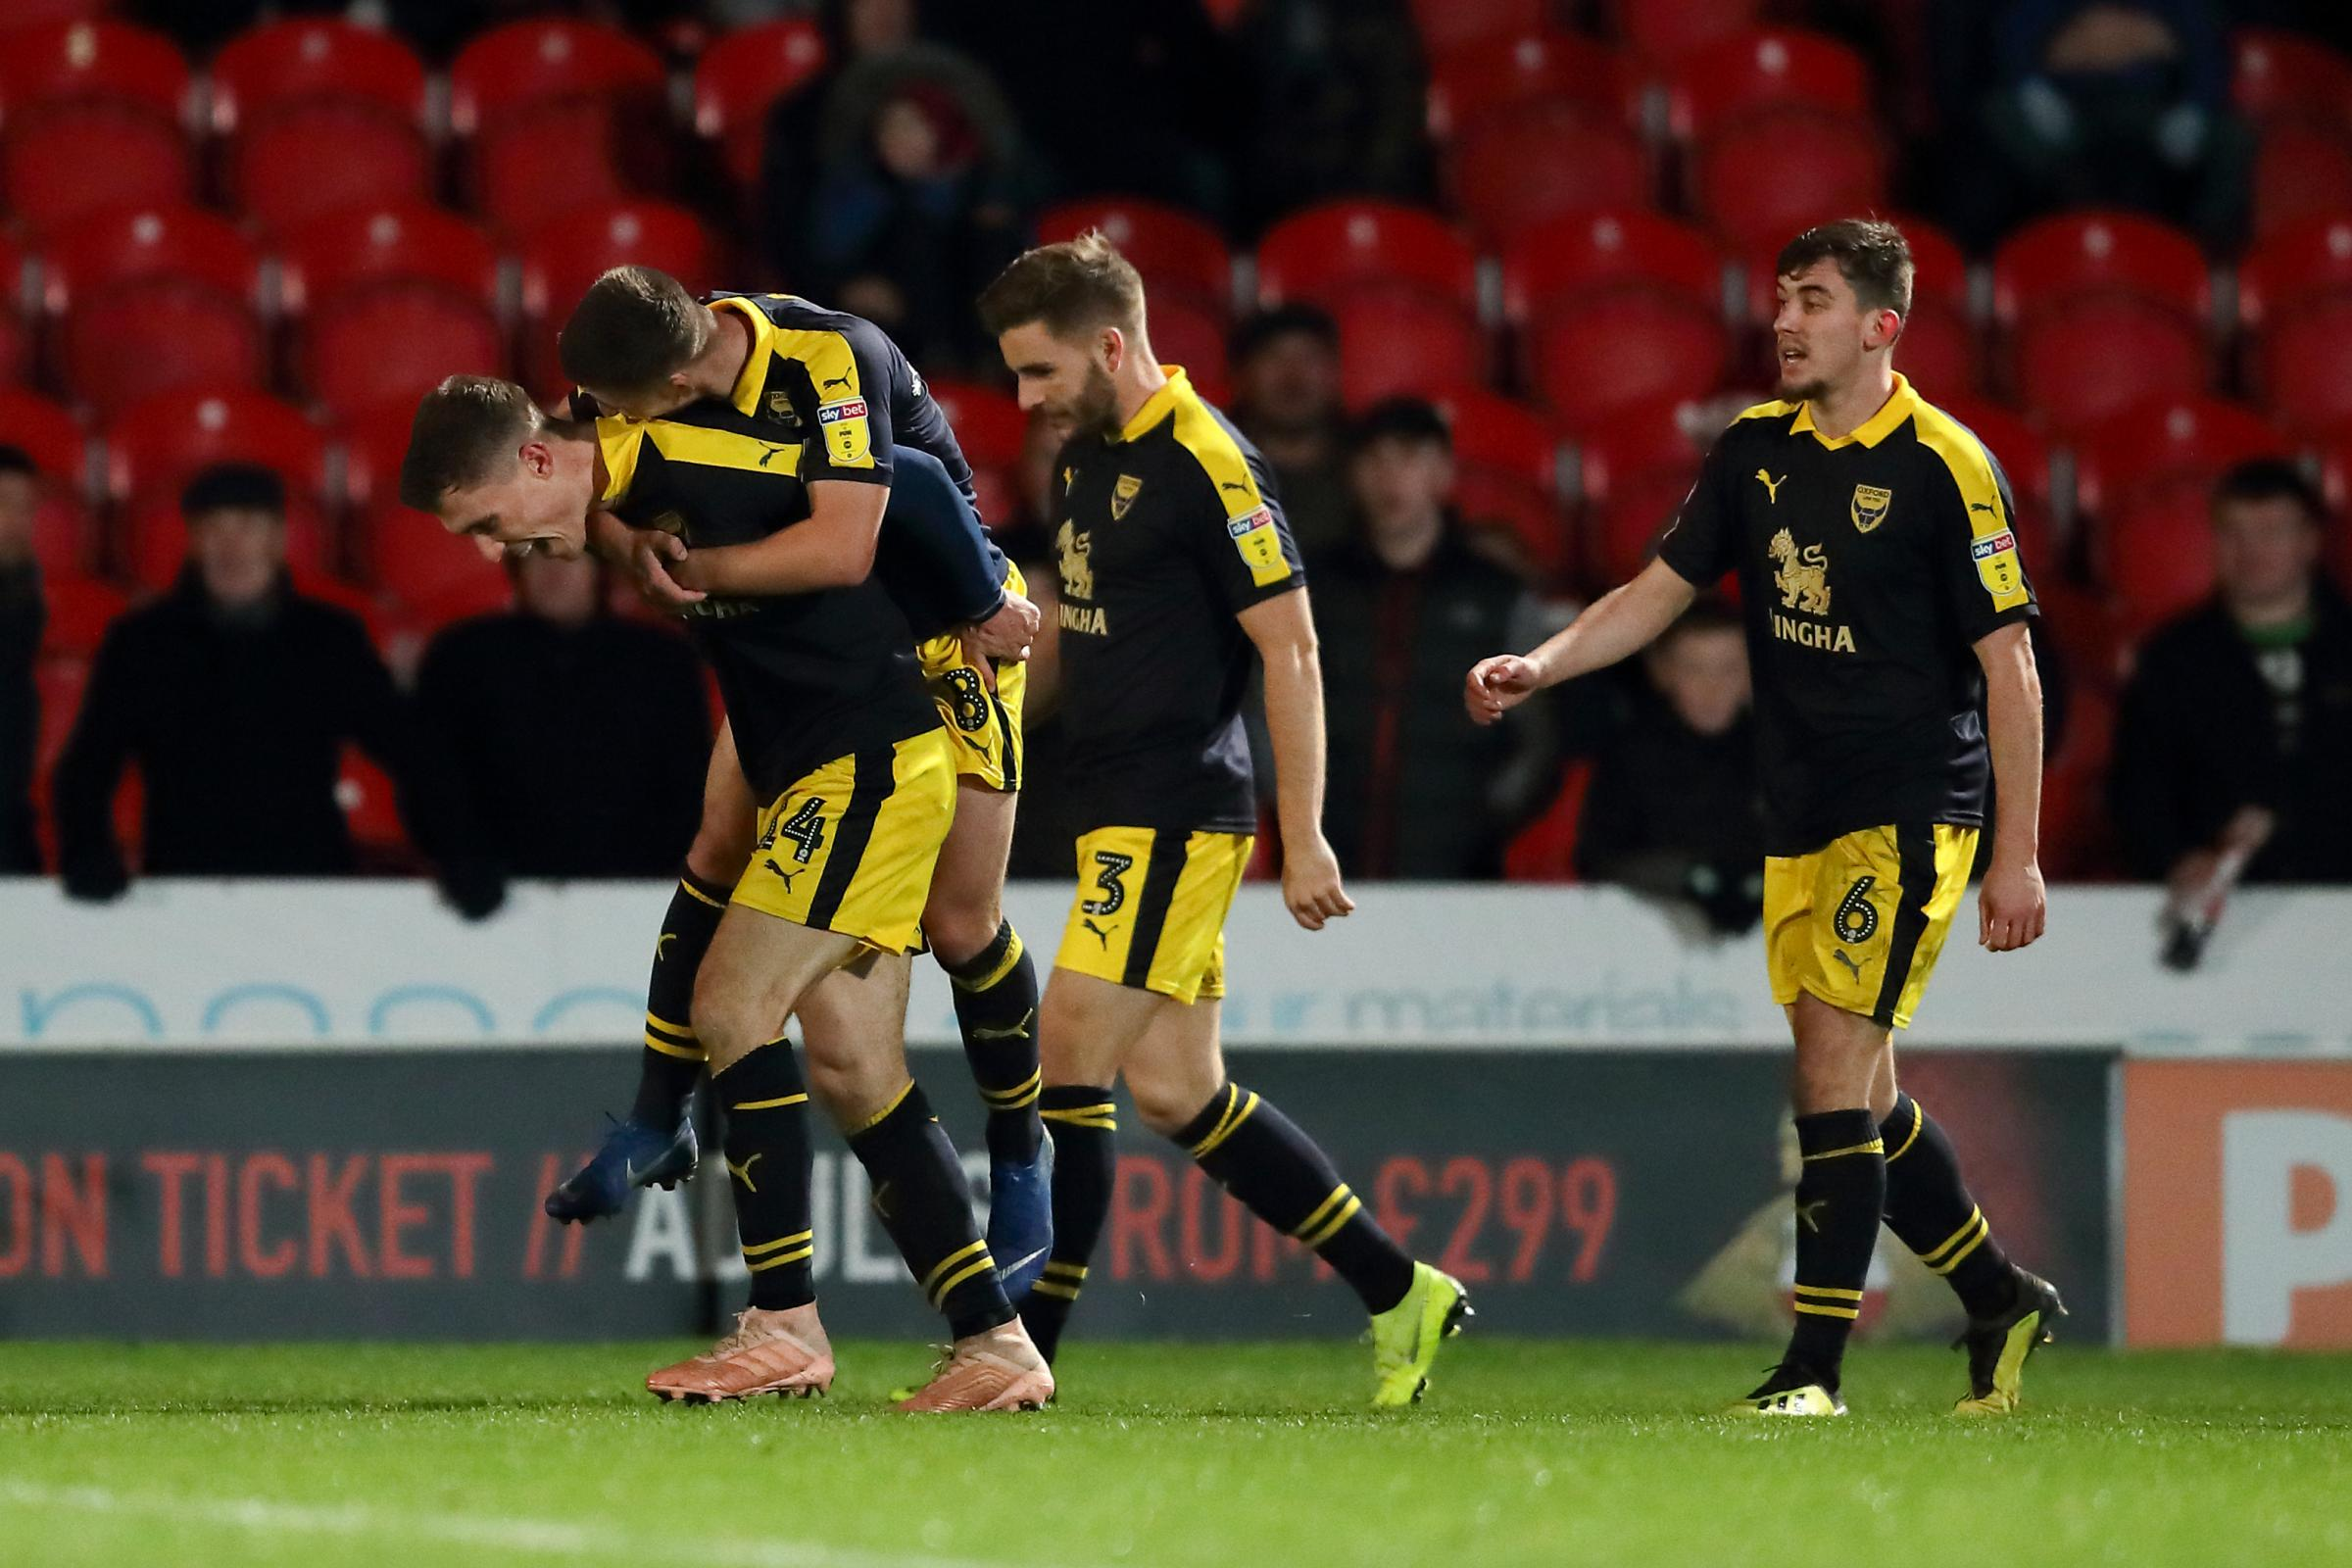 Josh Ruffels scored Oxford United's last goal, against Doncaster Rovers on December 22  Picture: James Williamson